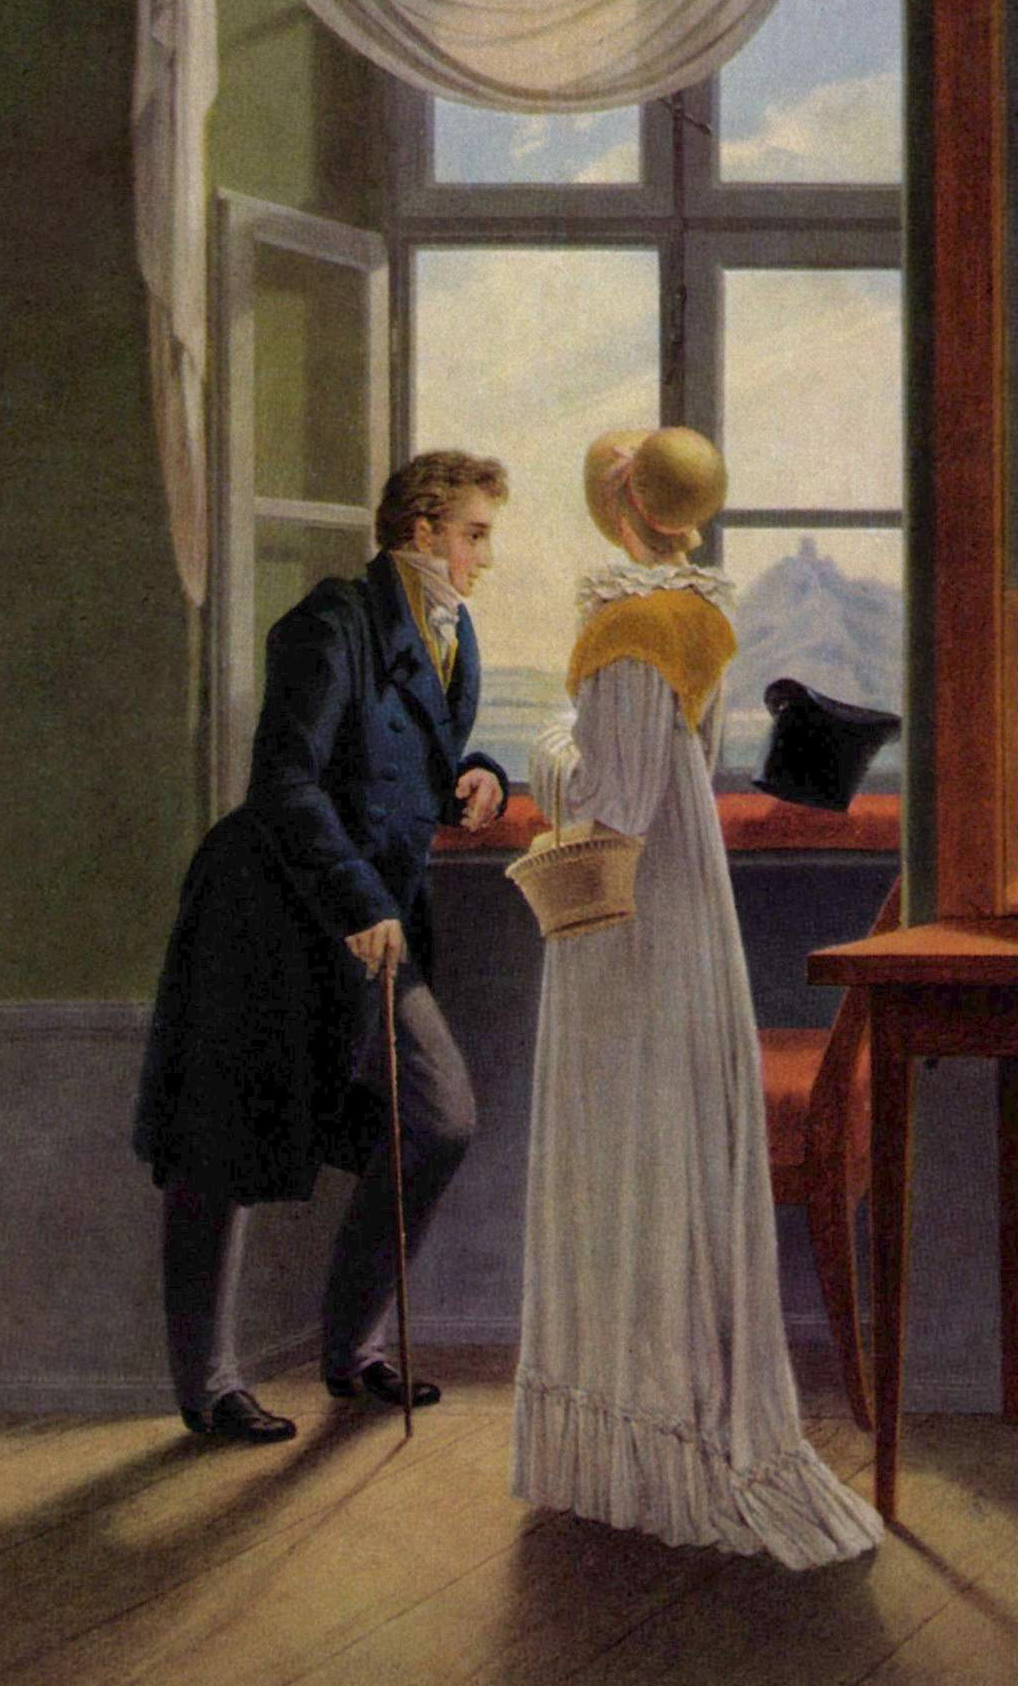 http://upload.wikimedia.org/wikipedia/commons/3/3f/Georg_Friedrich_Kersting_005_detail.jpg